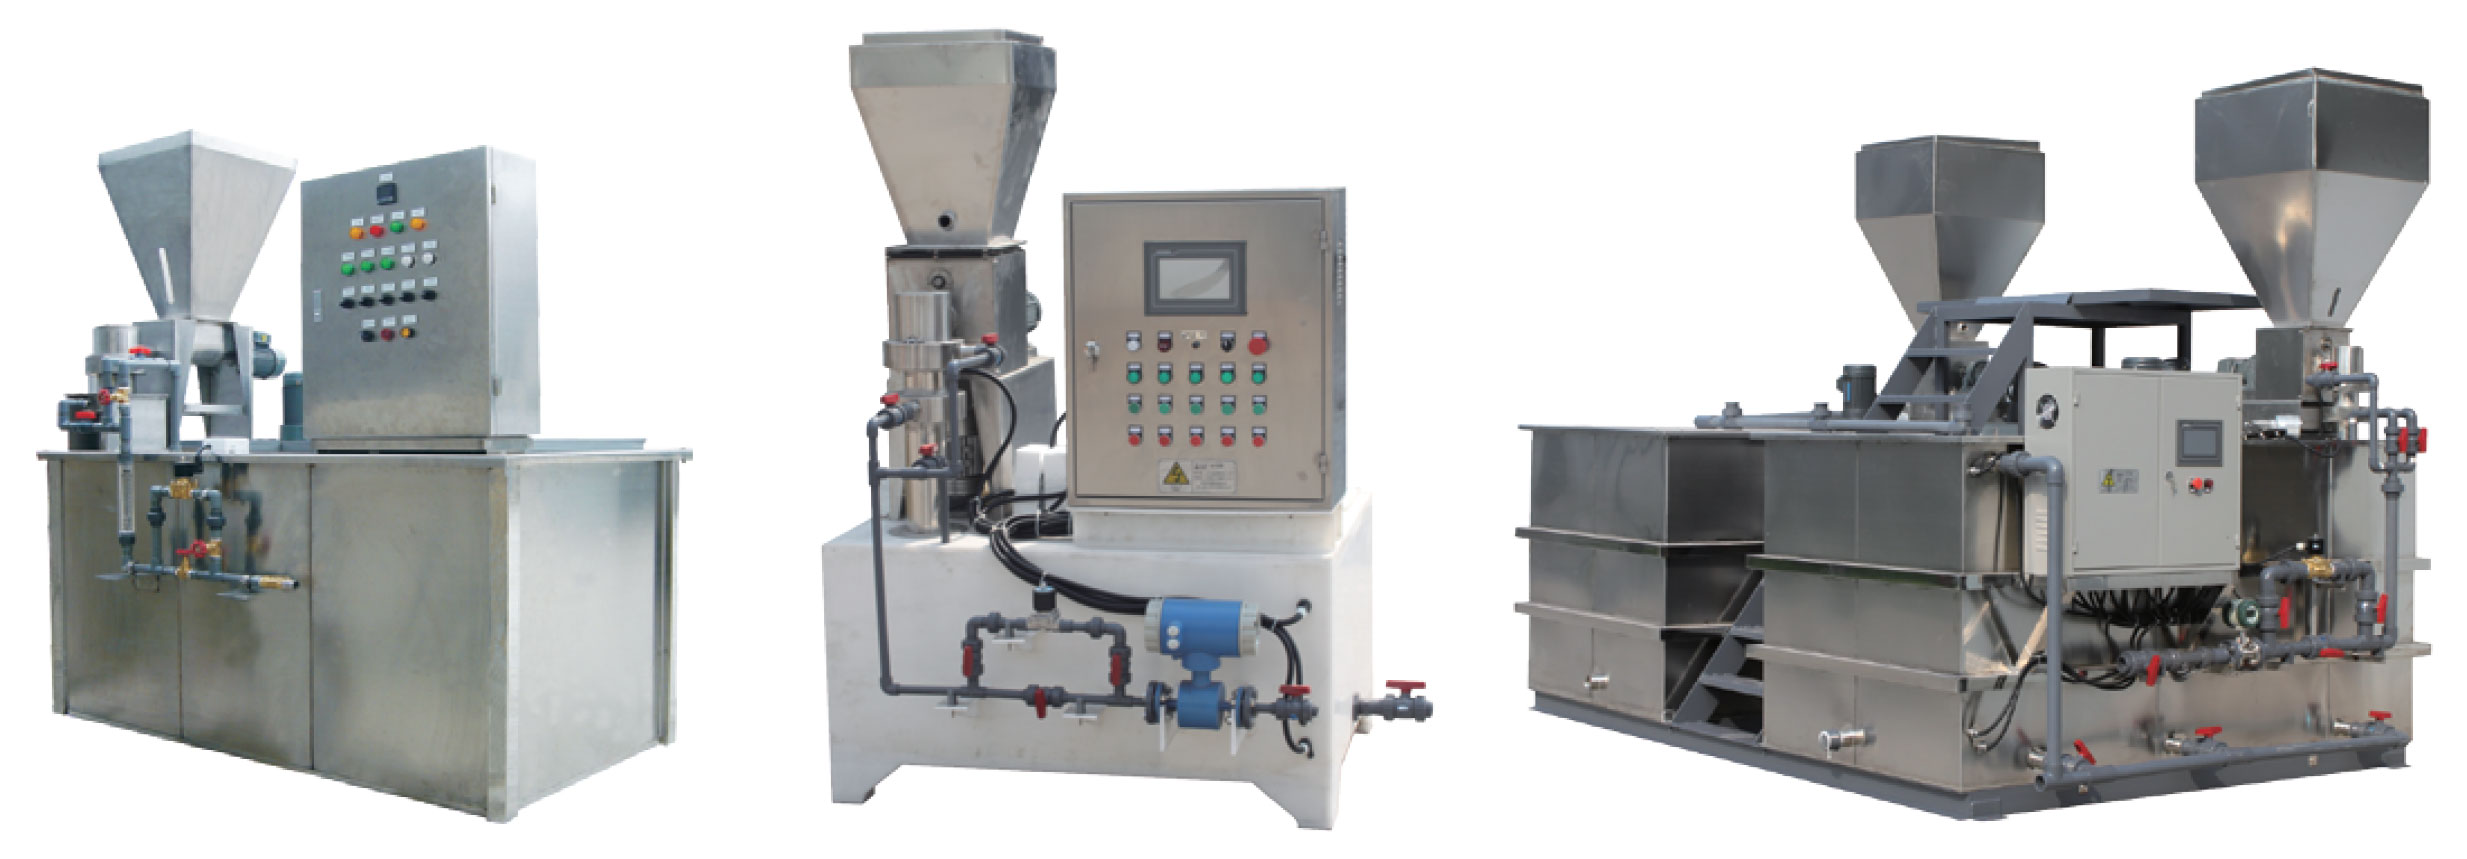 polymer preparation system in singapore